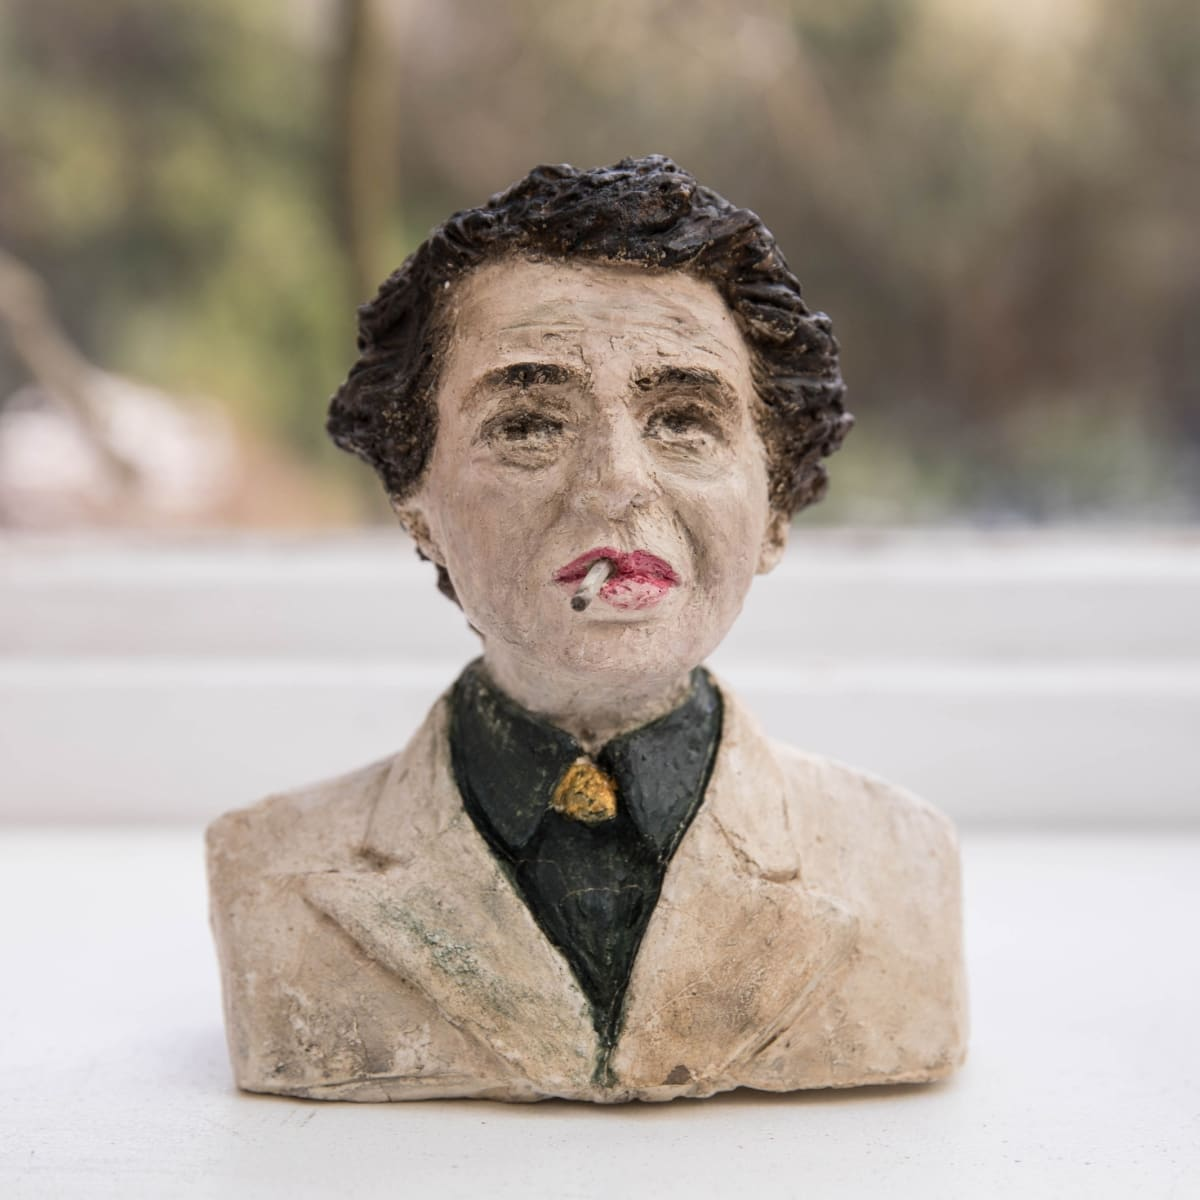 Nicole Farhi Hannah Arendt ciment fondu and acrylic; hand-painted bronze casts available to purchase 17 x 15 x 6 cm edition of 7 + 3 APs